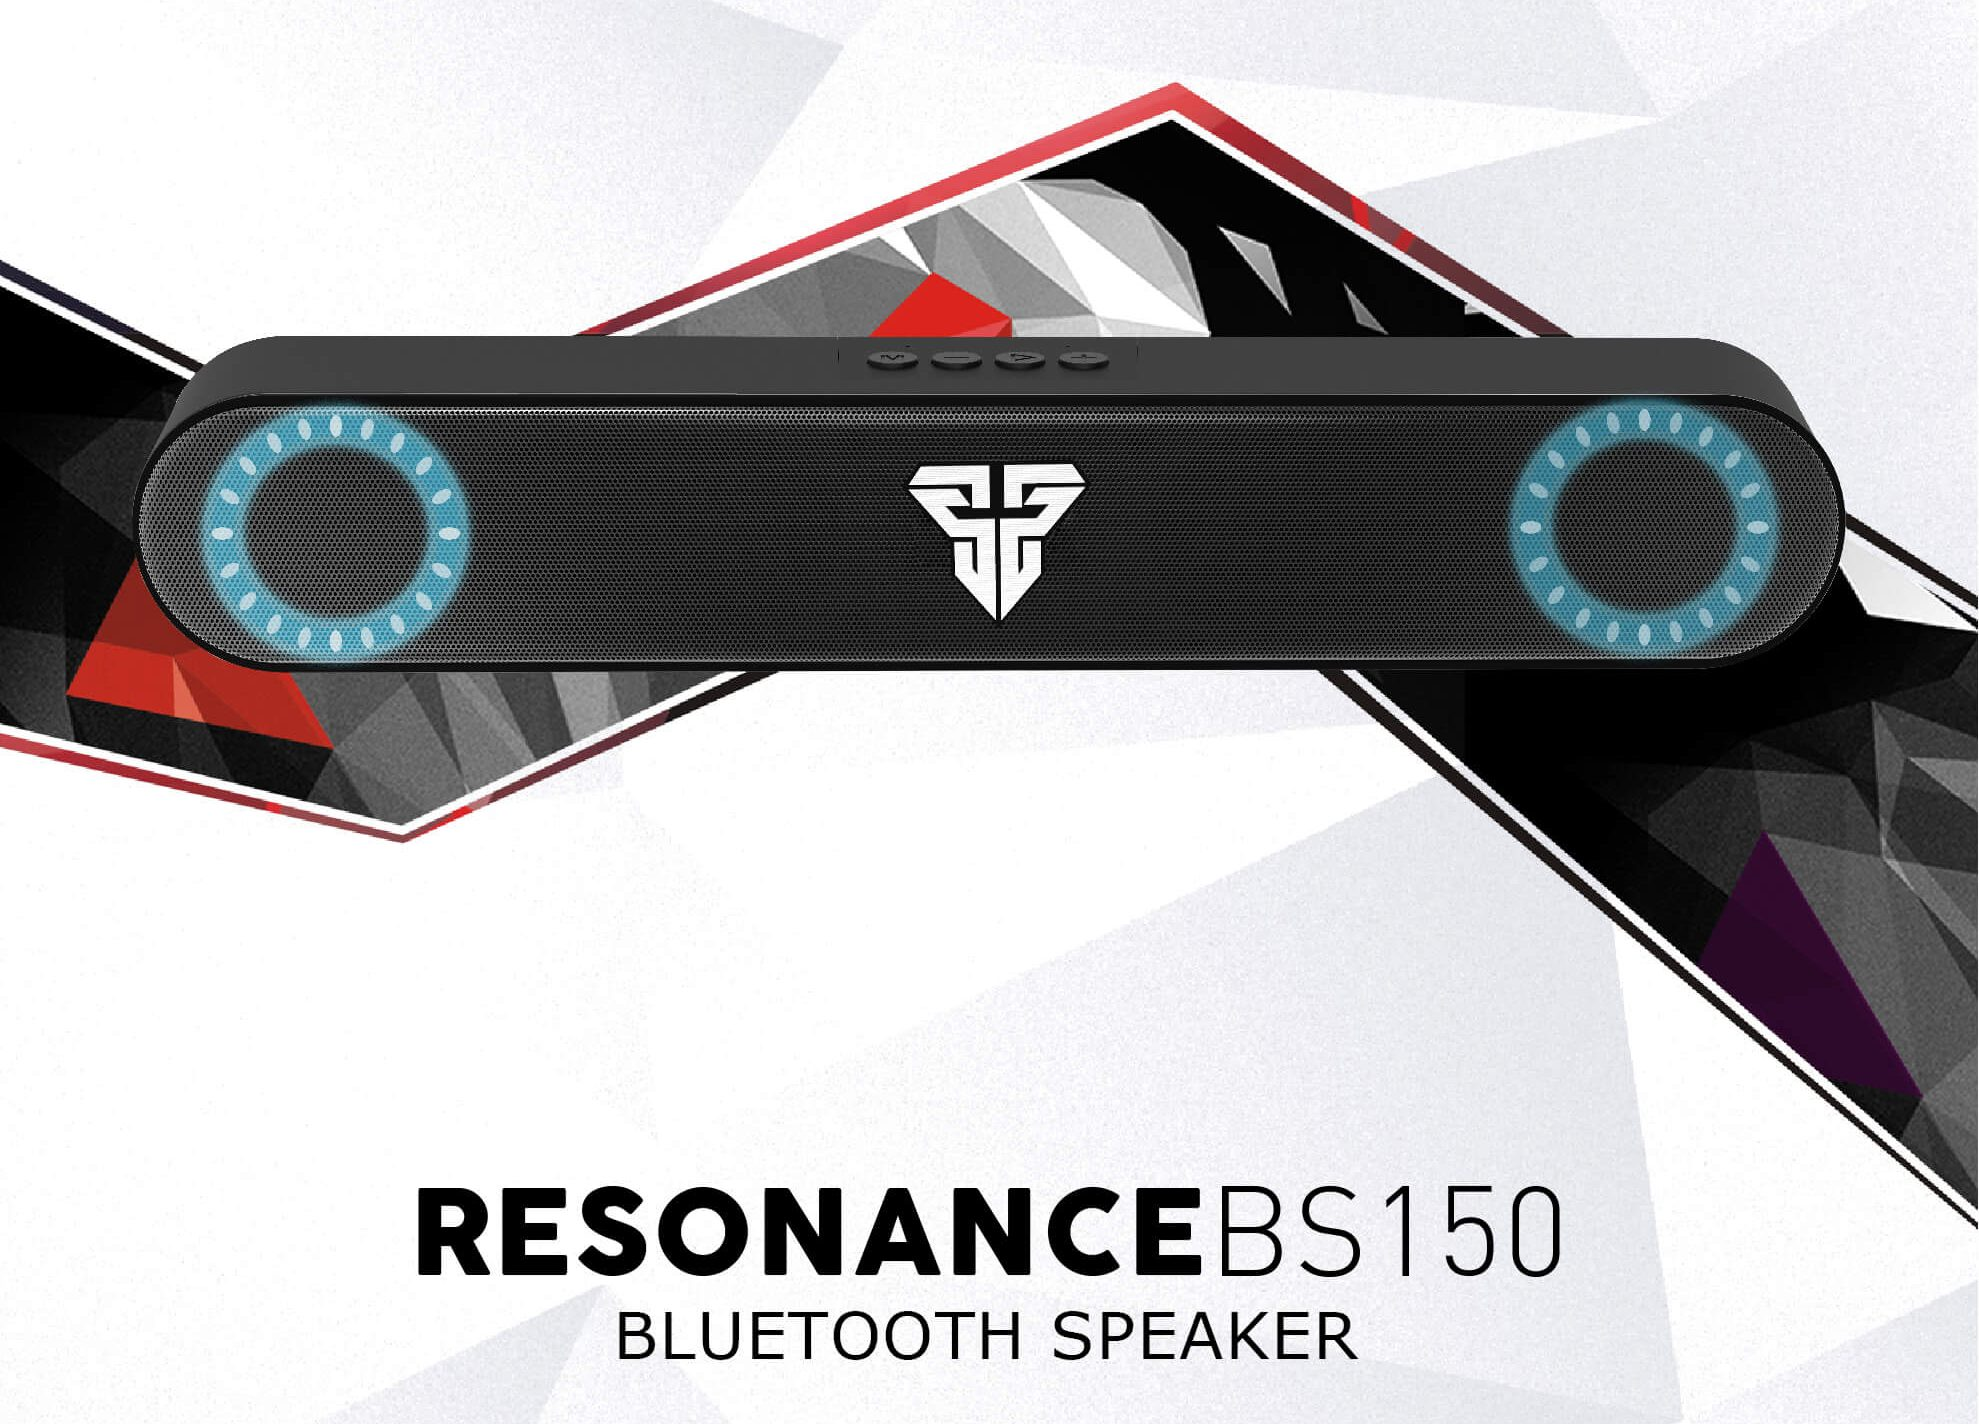 Fantech-Resonance-BS150-Bluetooth-Speake